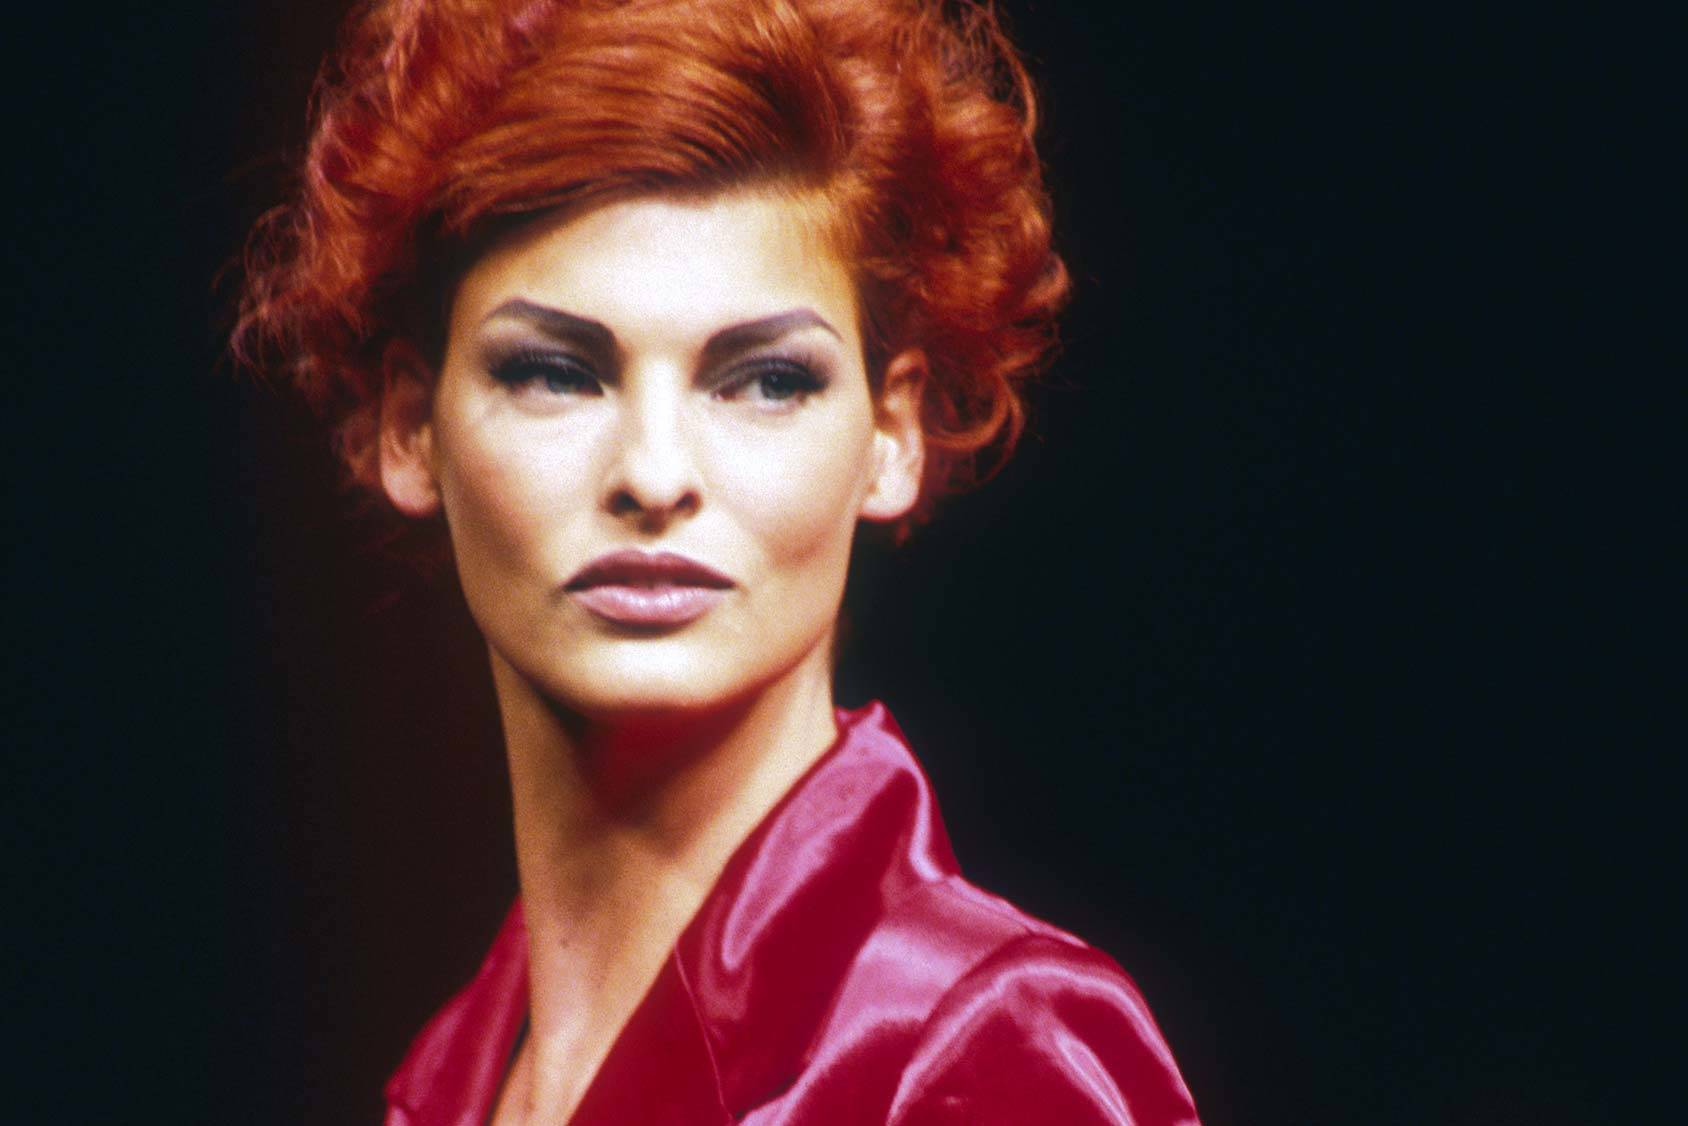 90s supermodel Linda Evangelista, All Over Press.